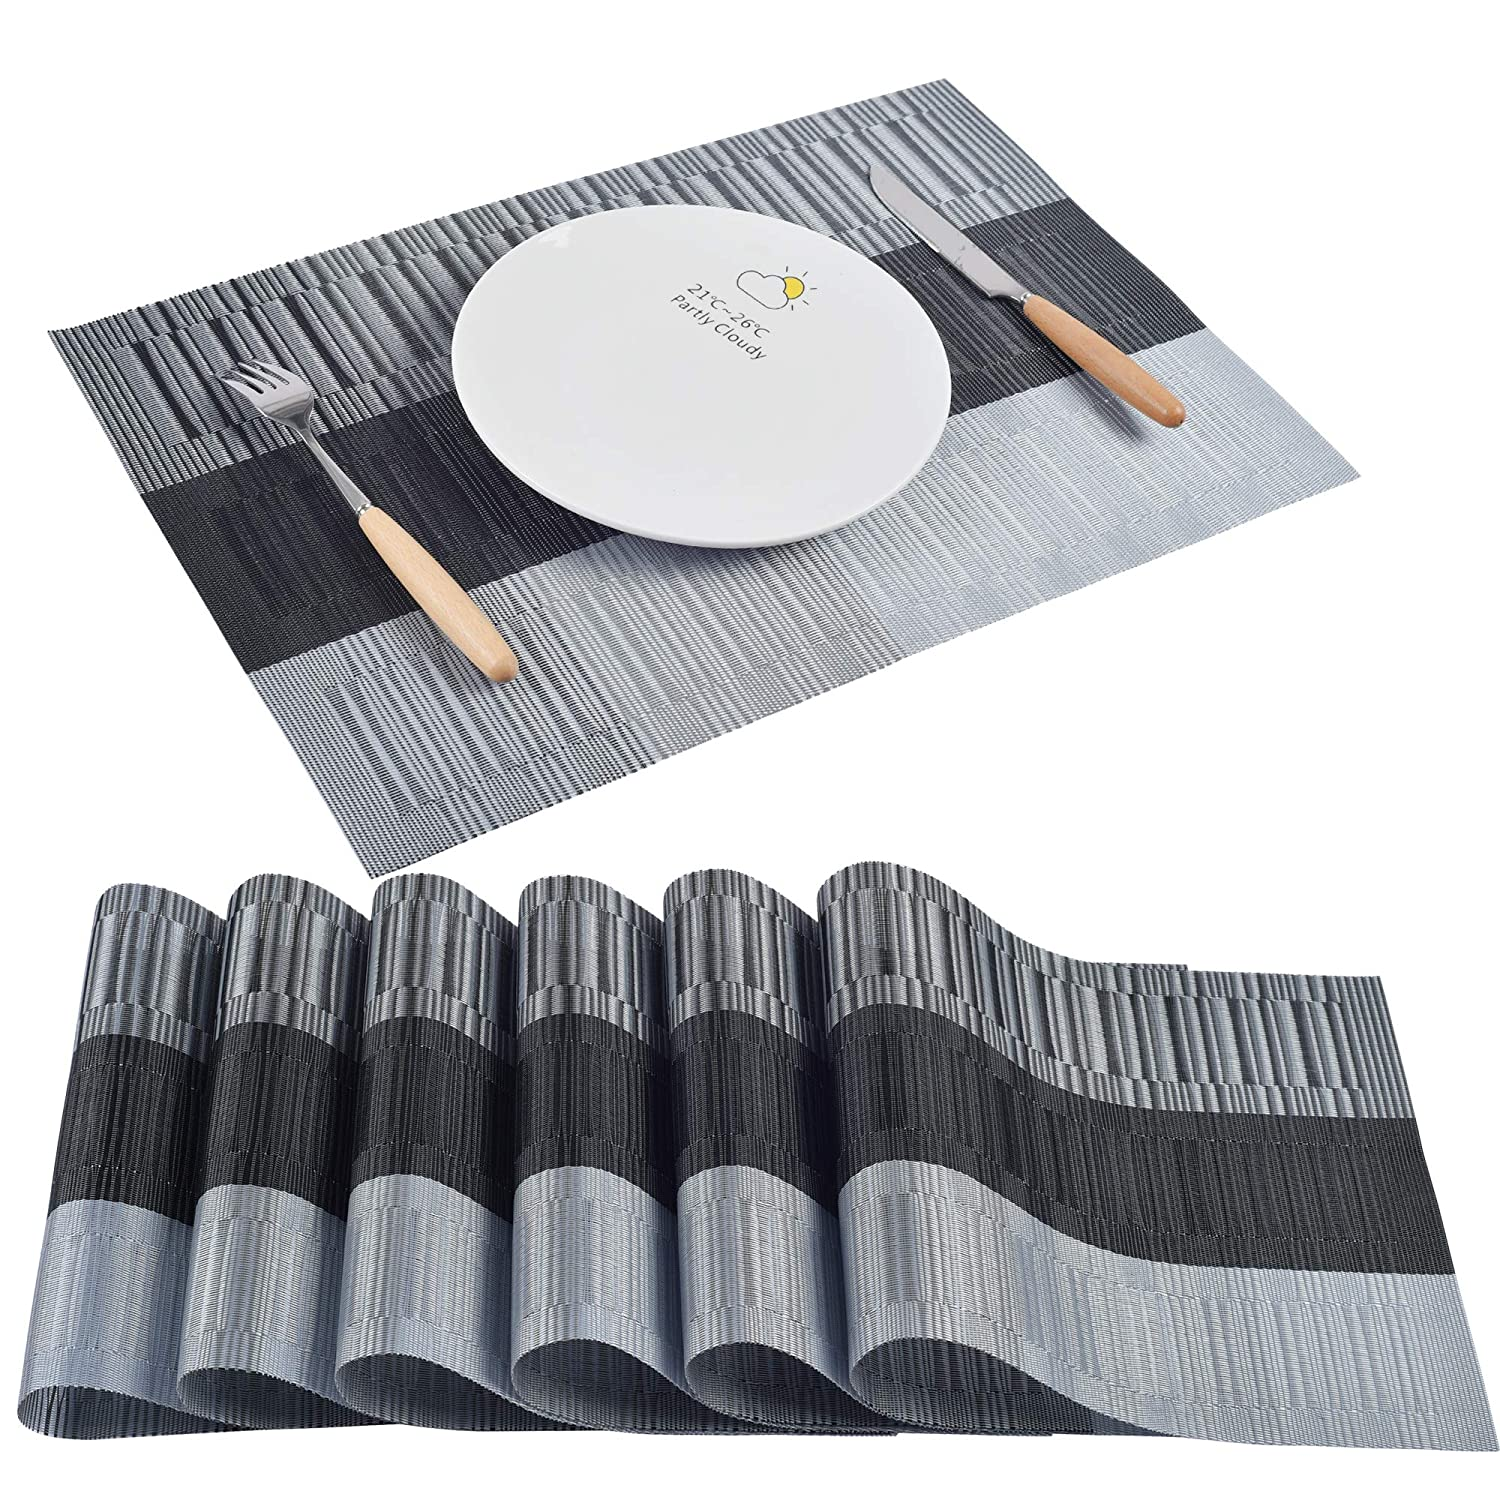 Set de Table Pour Table de Cuisine Lot de 6 TissÉ en PVC Set de Table Noir 45cm*30cm